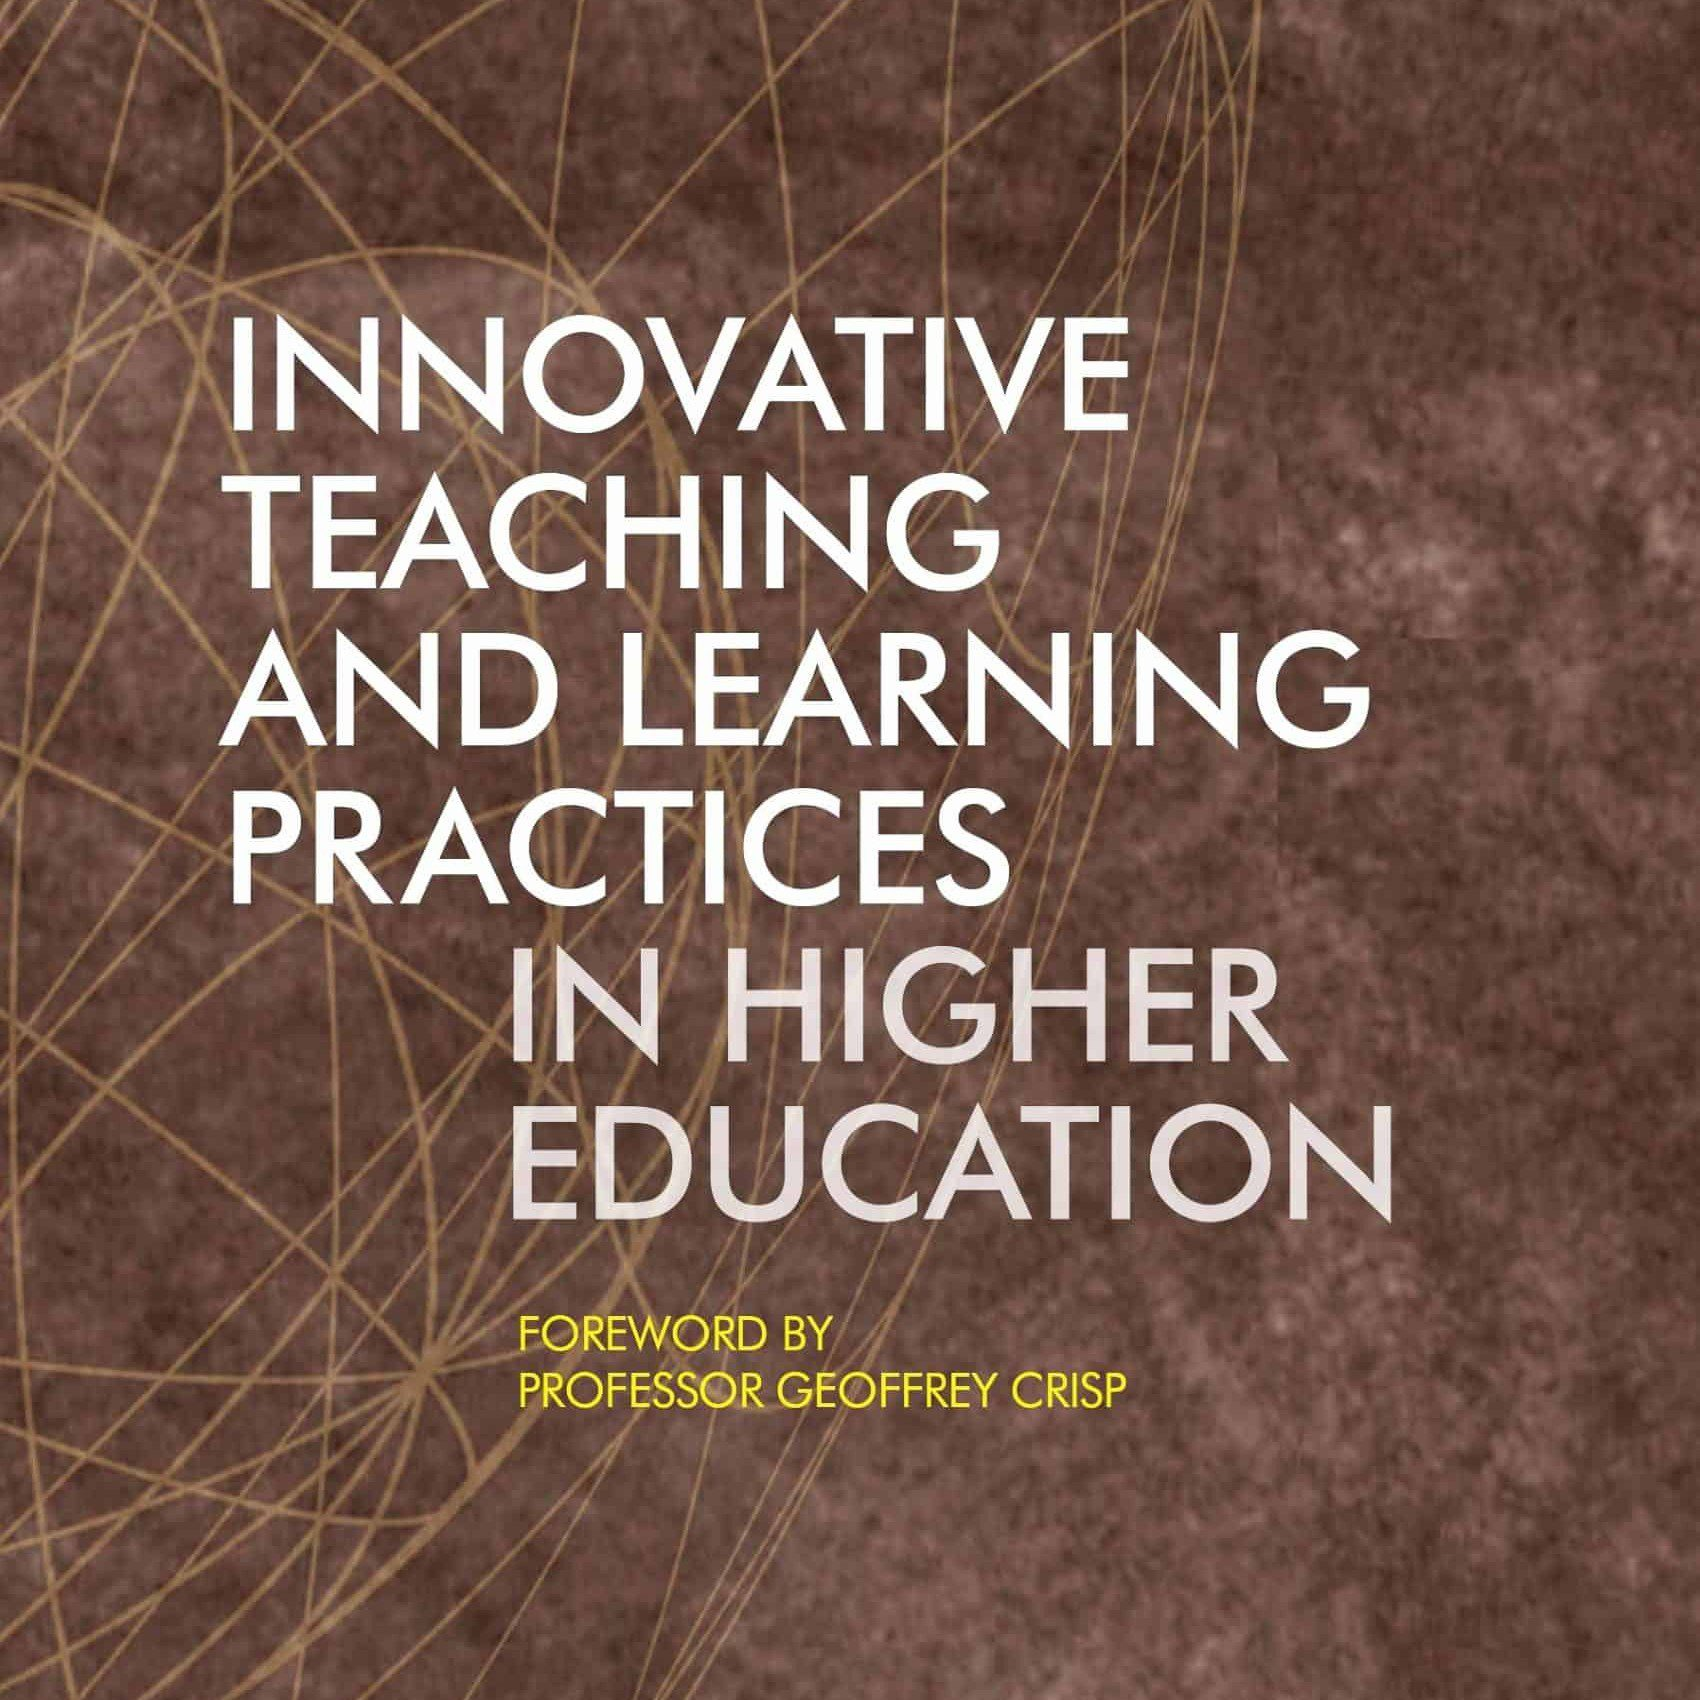 Innovative Teaching and Learning Practices in Higher Education - Kayoko Enomoto - Richard Warner - Claus Nygaard - Geoffrey Crisp - Libri Publishing - Institute for Learning in Higher Education - Kayoko Enomoto - Richard Warner - Claus Nygaard - Geoffrey Crisp - Libri Publishing Ltd - what is innovation in education - what is innovative education